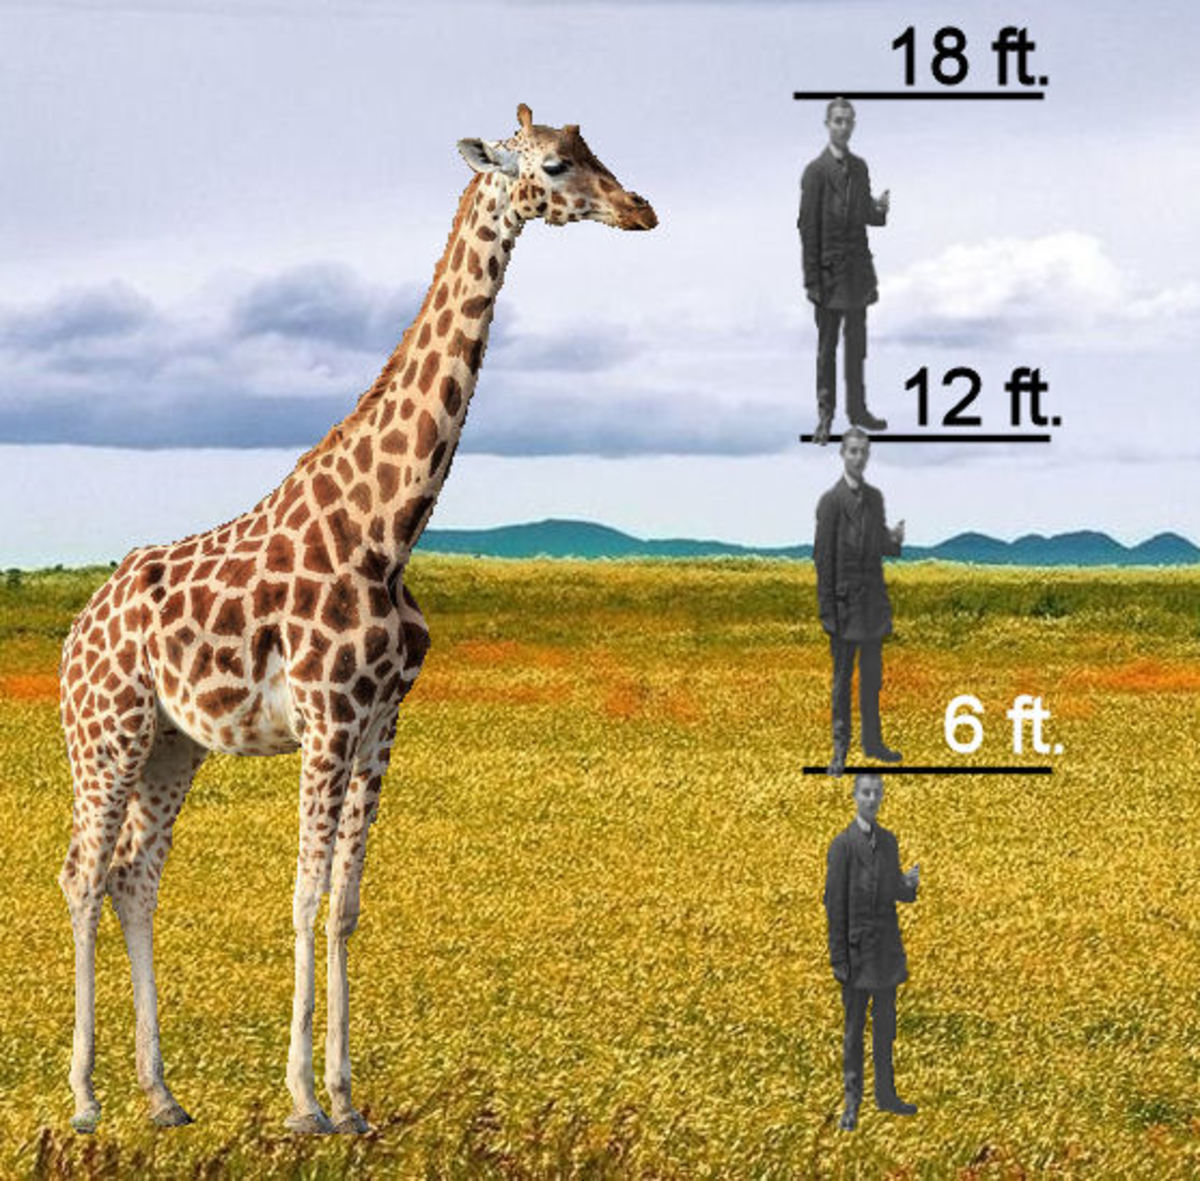 This is how tall some giraffes are